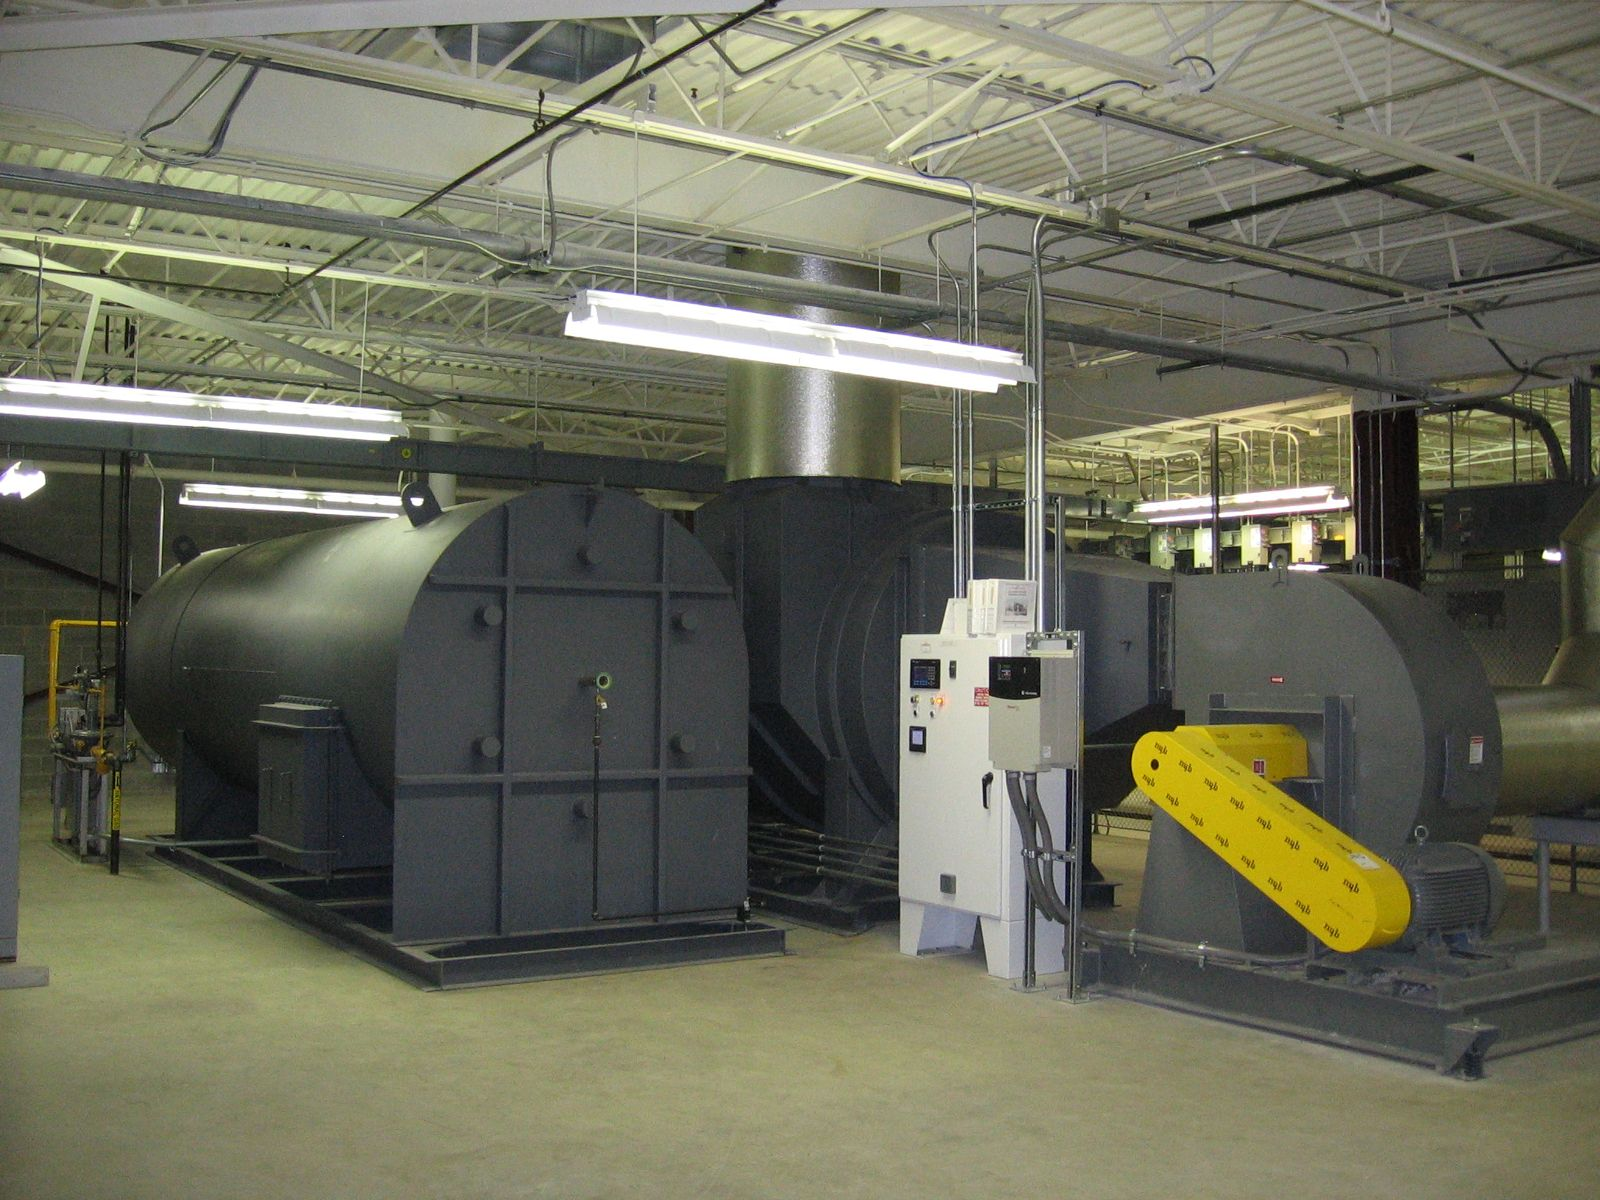 CPI Installs Thermal Oxidizer for VOC Control of Engine Dynamometer Test Cells